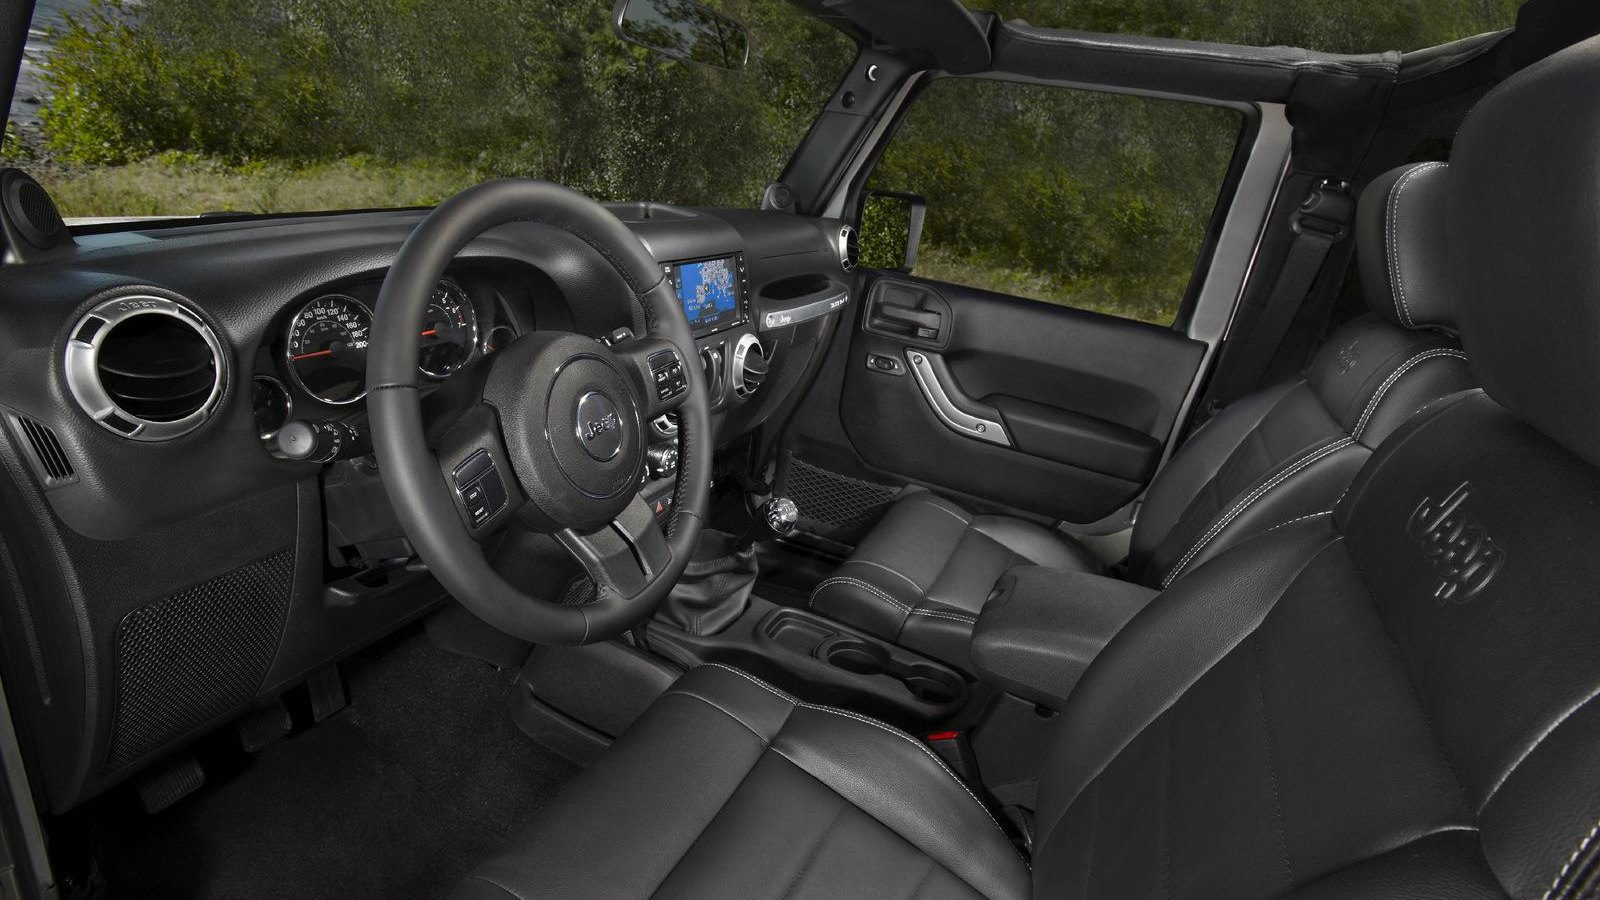 jeep wrangler 2.8 crd unlimited-pic. 3